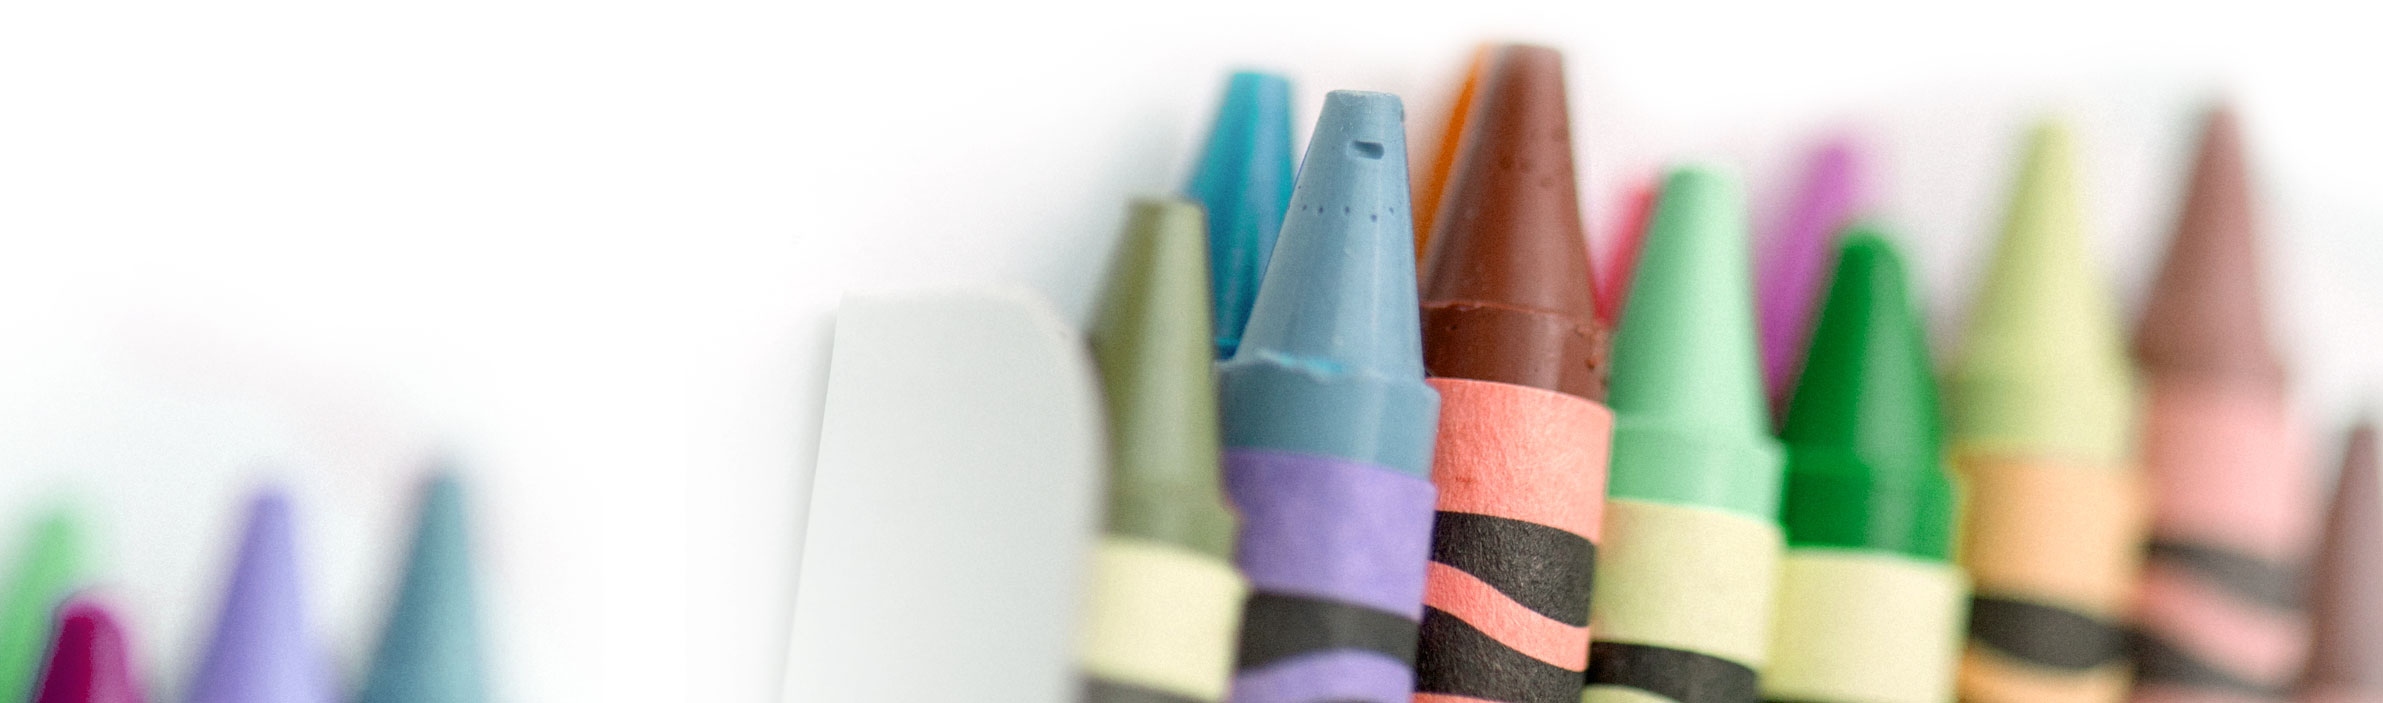 crayons in holder on white background